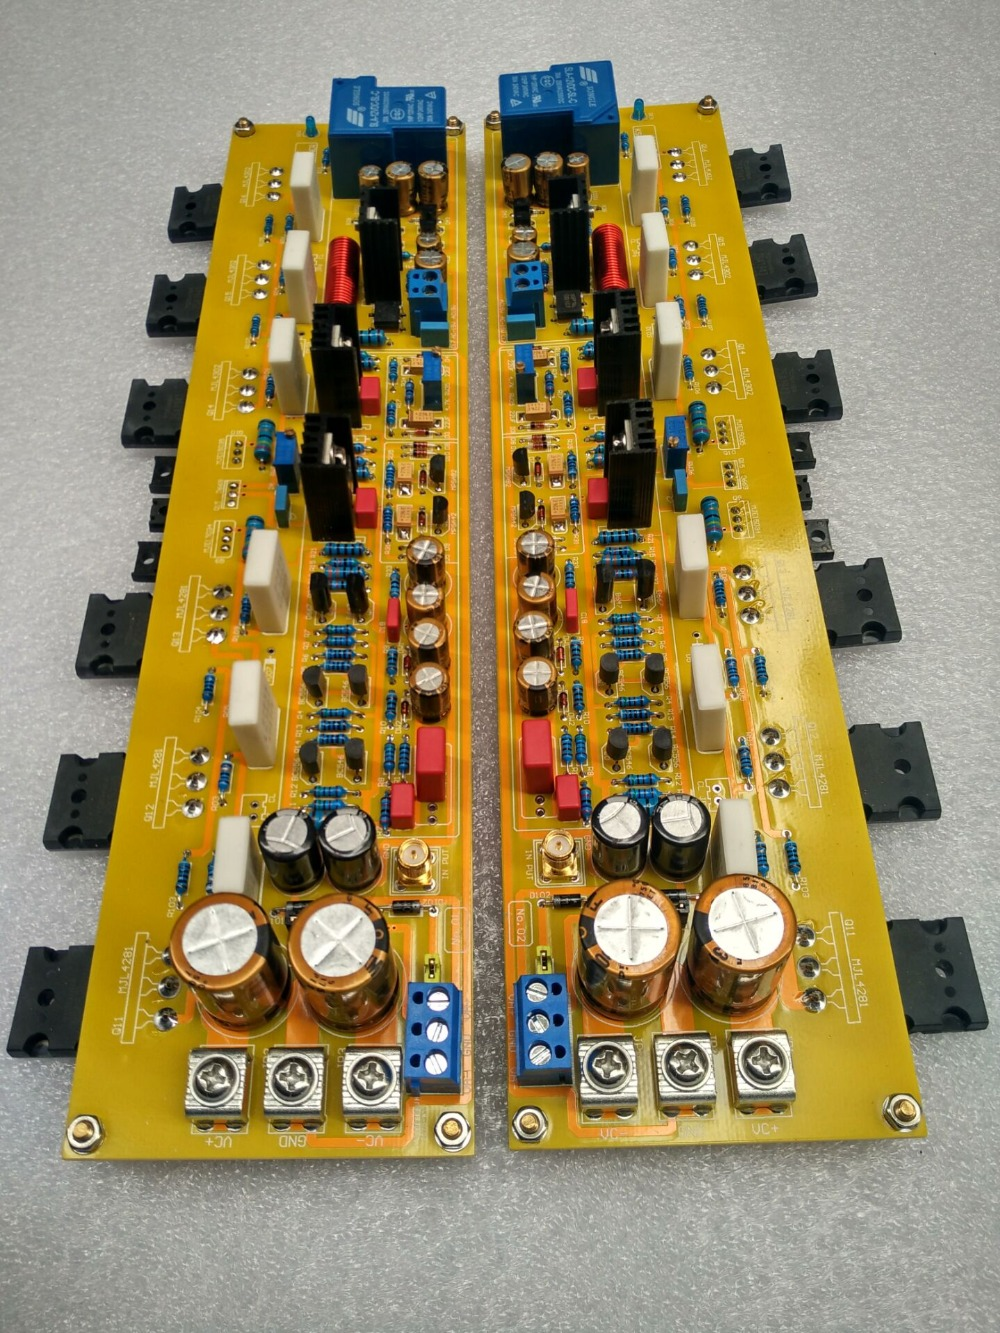 KRELL KSA50 50W 2SC5200 / 2SA1943 + 2SC2073 / 2SA940 + 2SC5171 / Power amplifier tube A pure power amplifier board 2sa1943 2sc5200